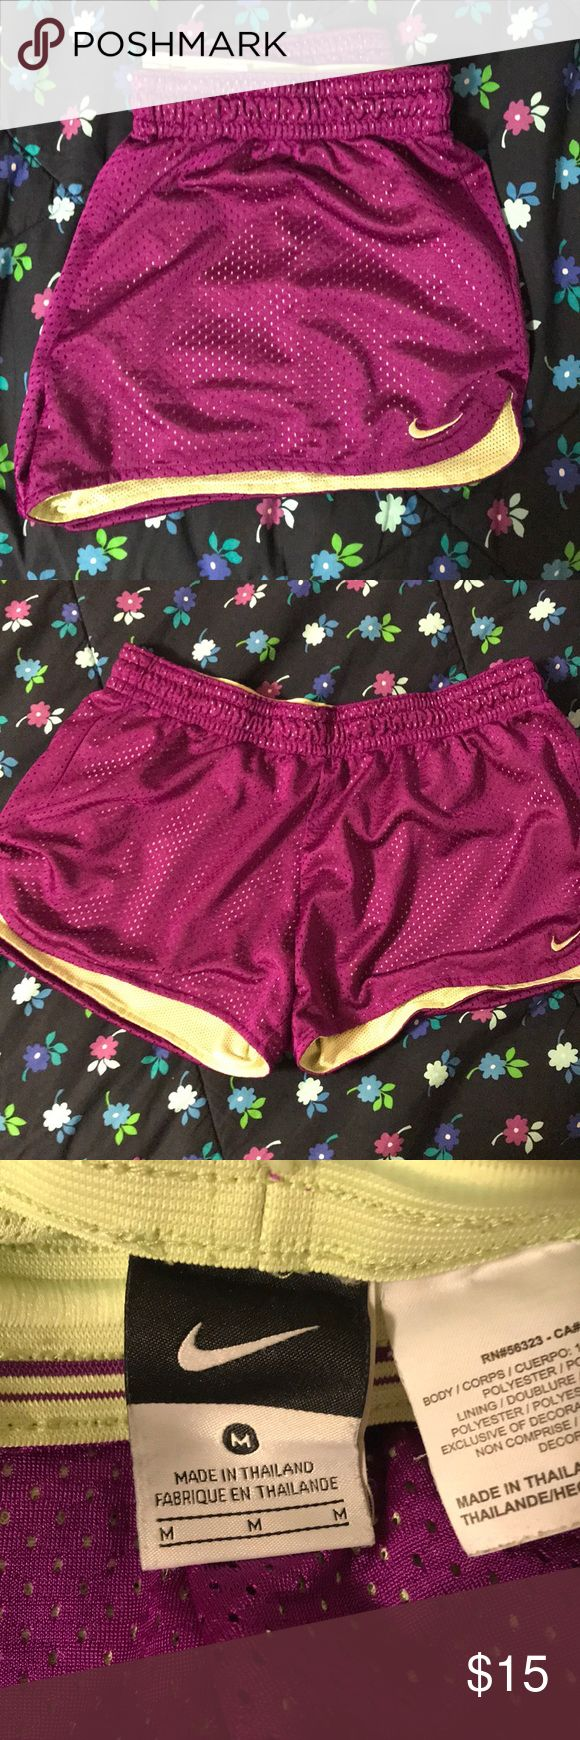 EUC Nike shorts size medium! Purple and lime green shorts! Size medium. Missing drawstring but the elastic is still tight and they stay up just fine. Nike Shorts